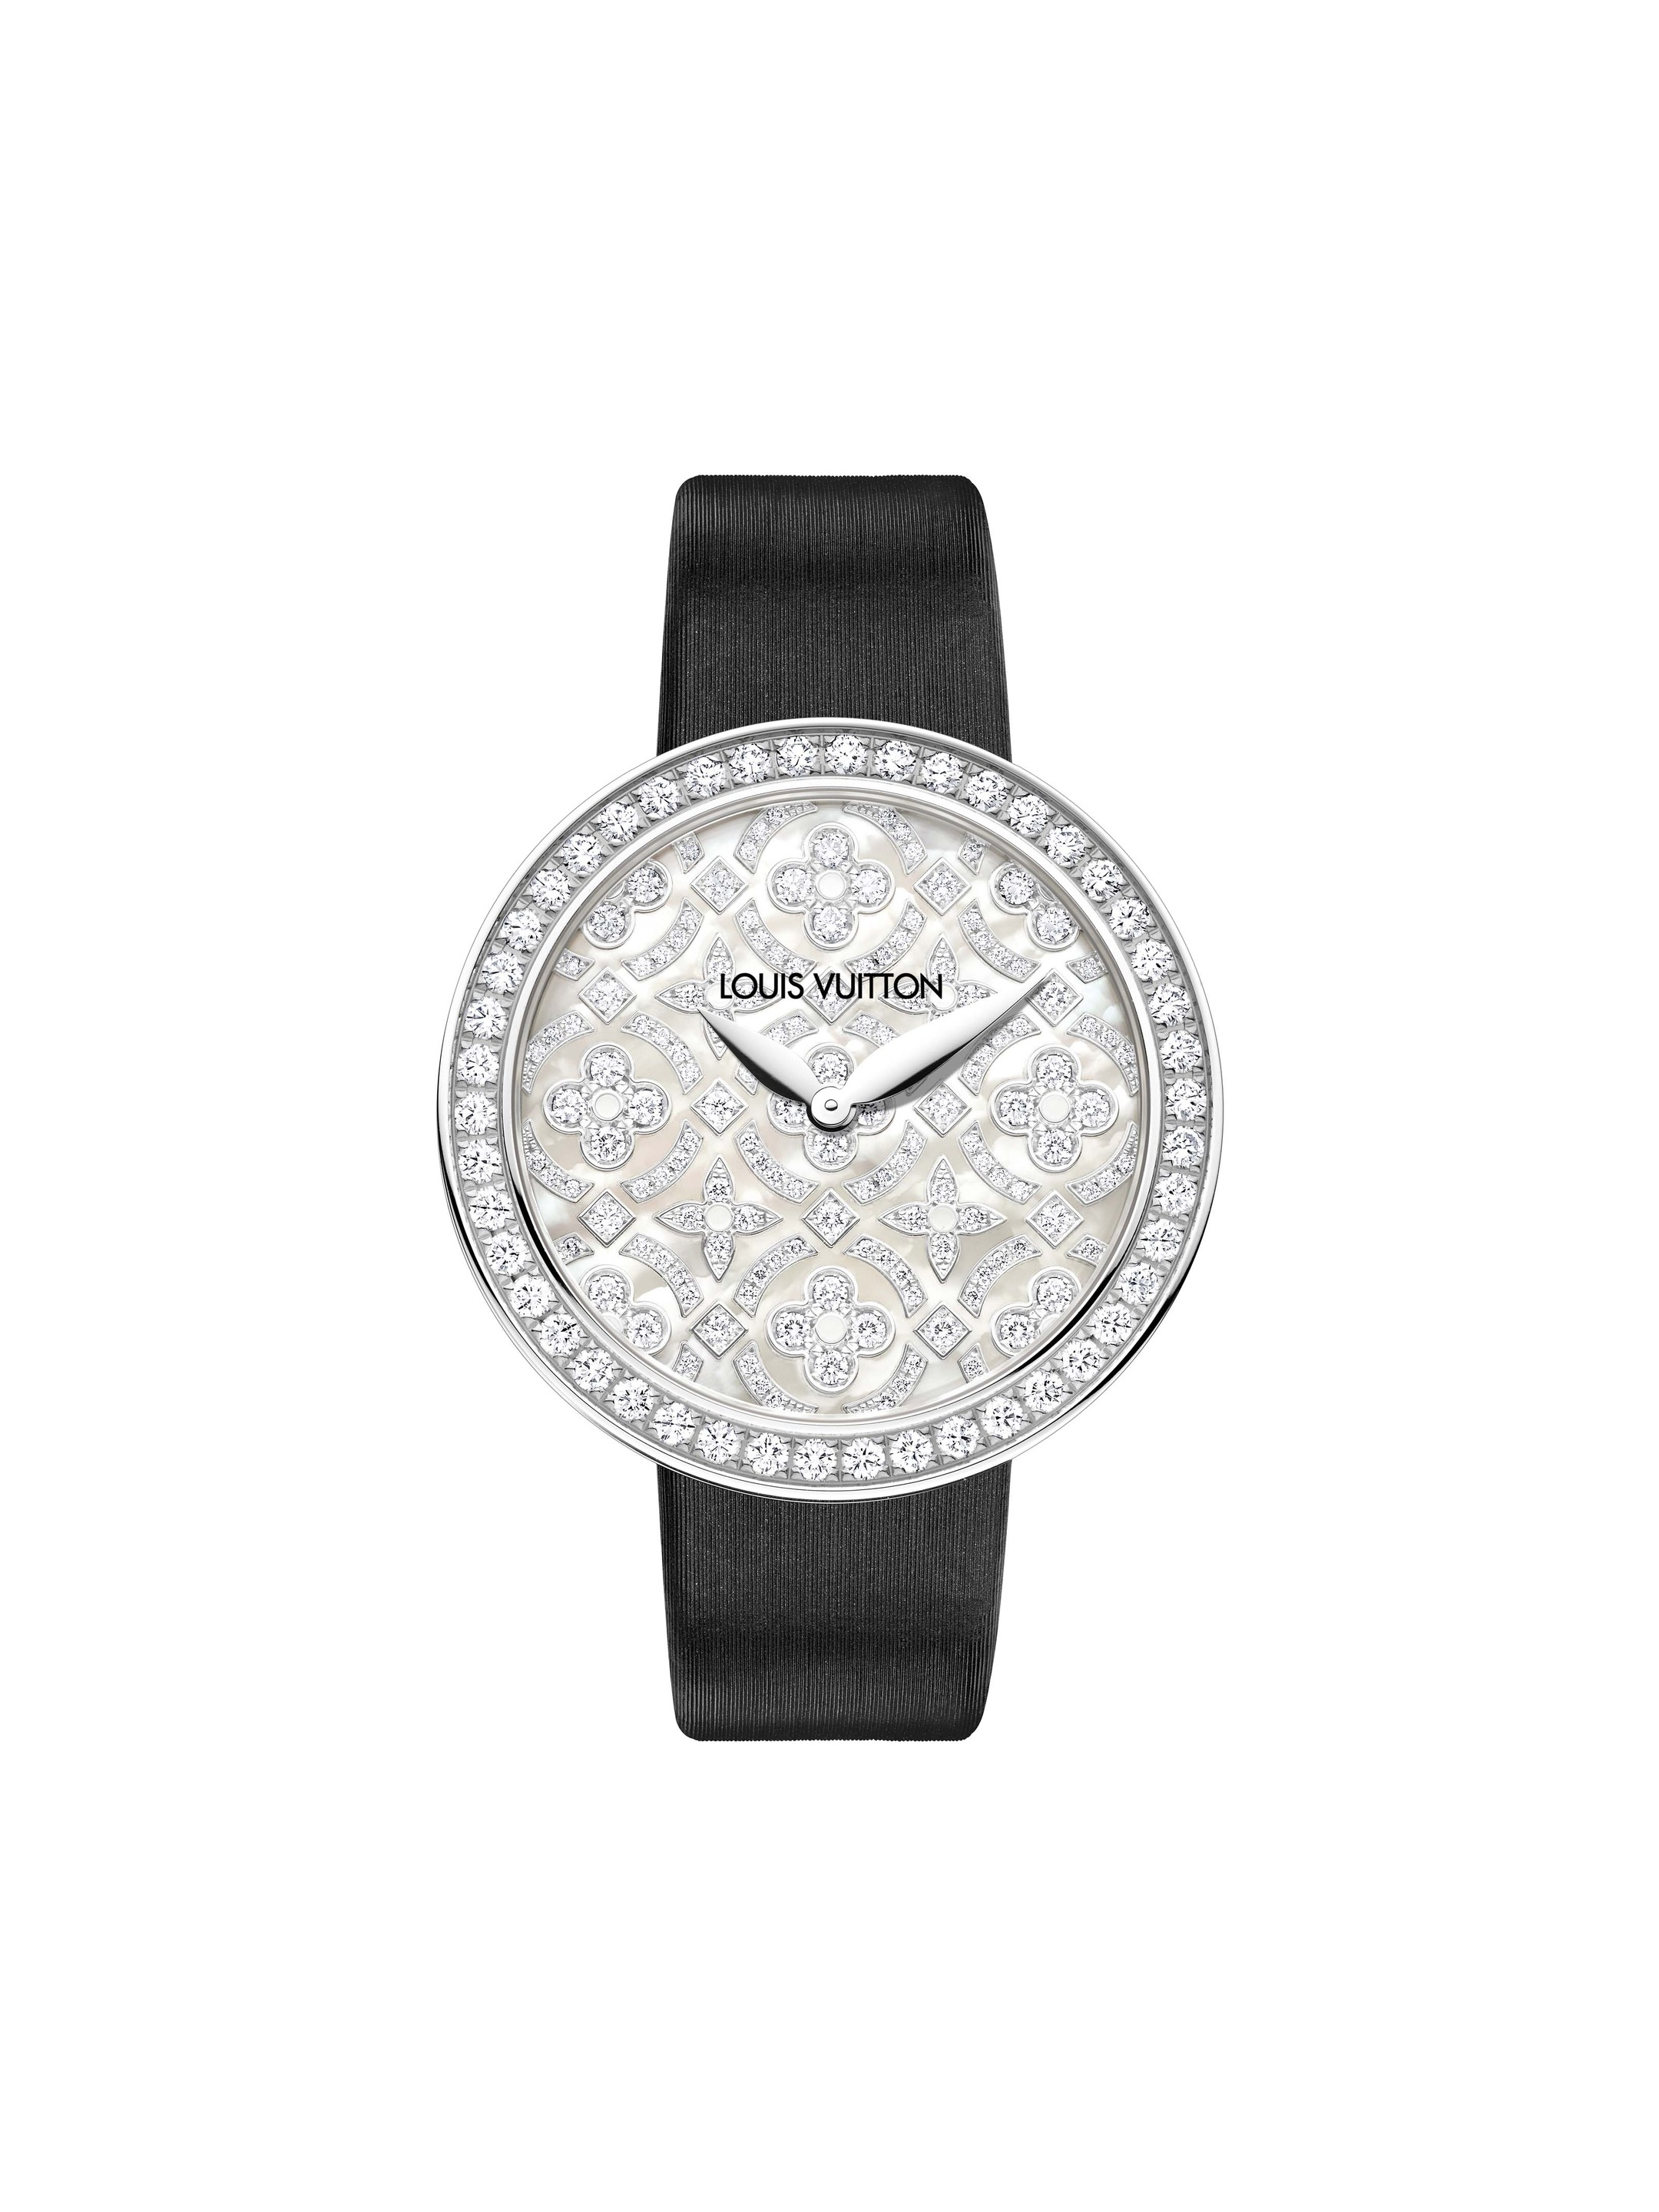 Louis Vuitton Dentelle de Monogram watch in white gold featuring an engraved white mother-of-pearl dial with the Louis Vuitton flower motif set with diamonds.